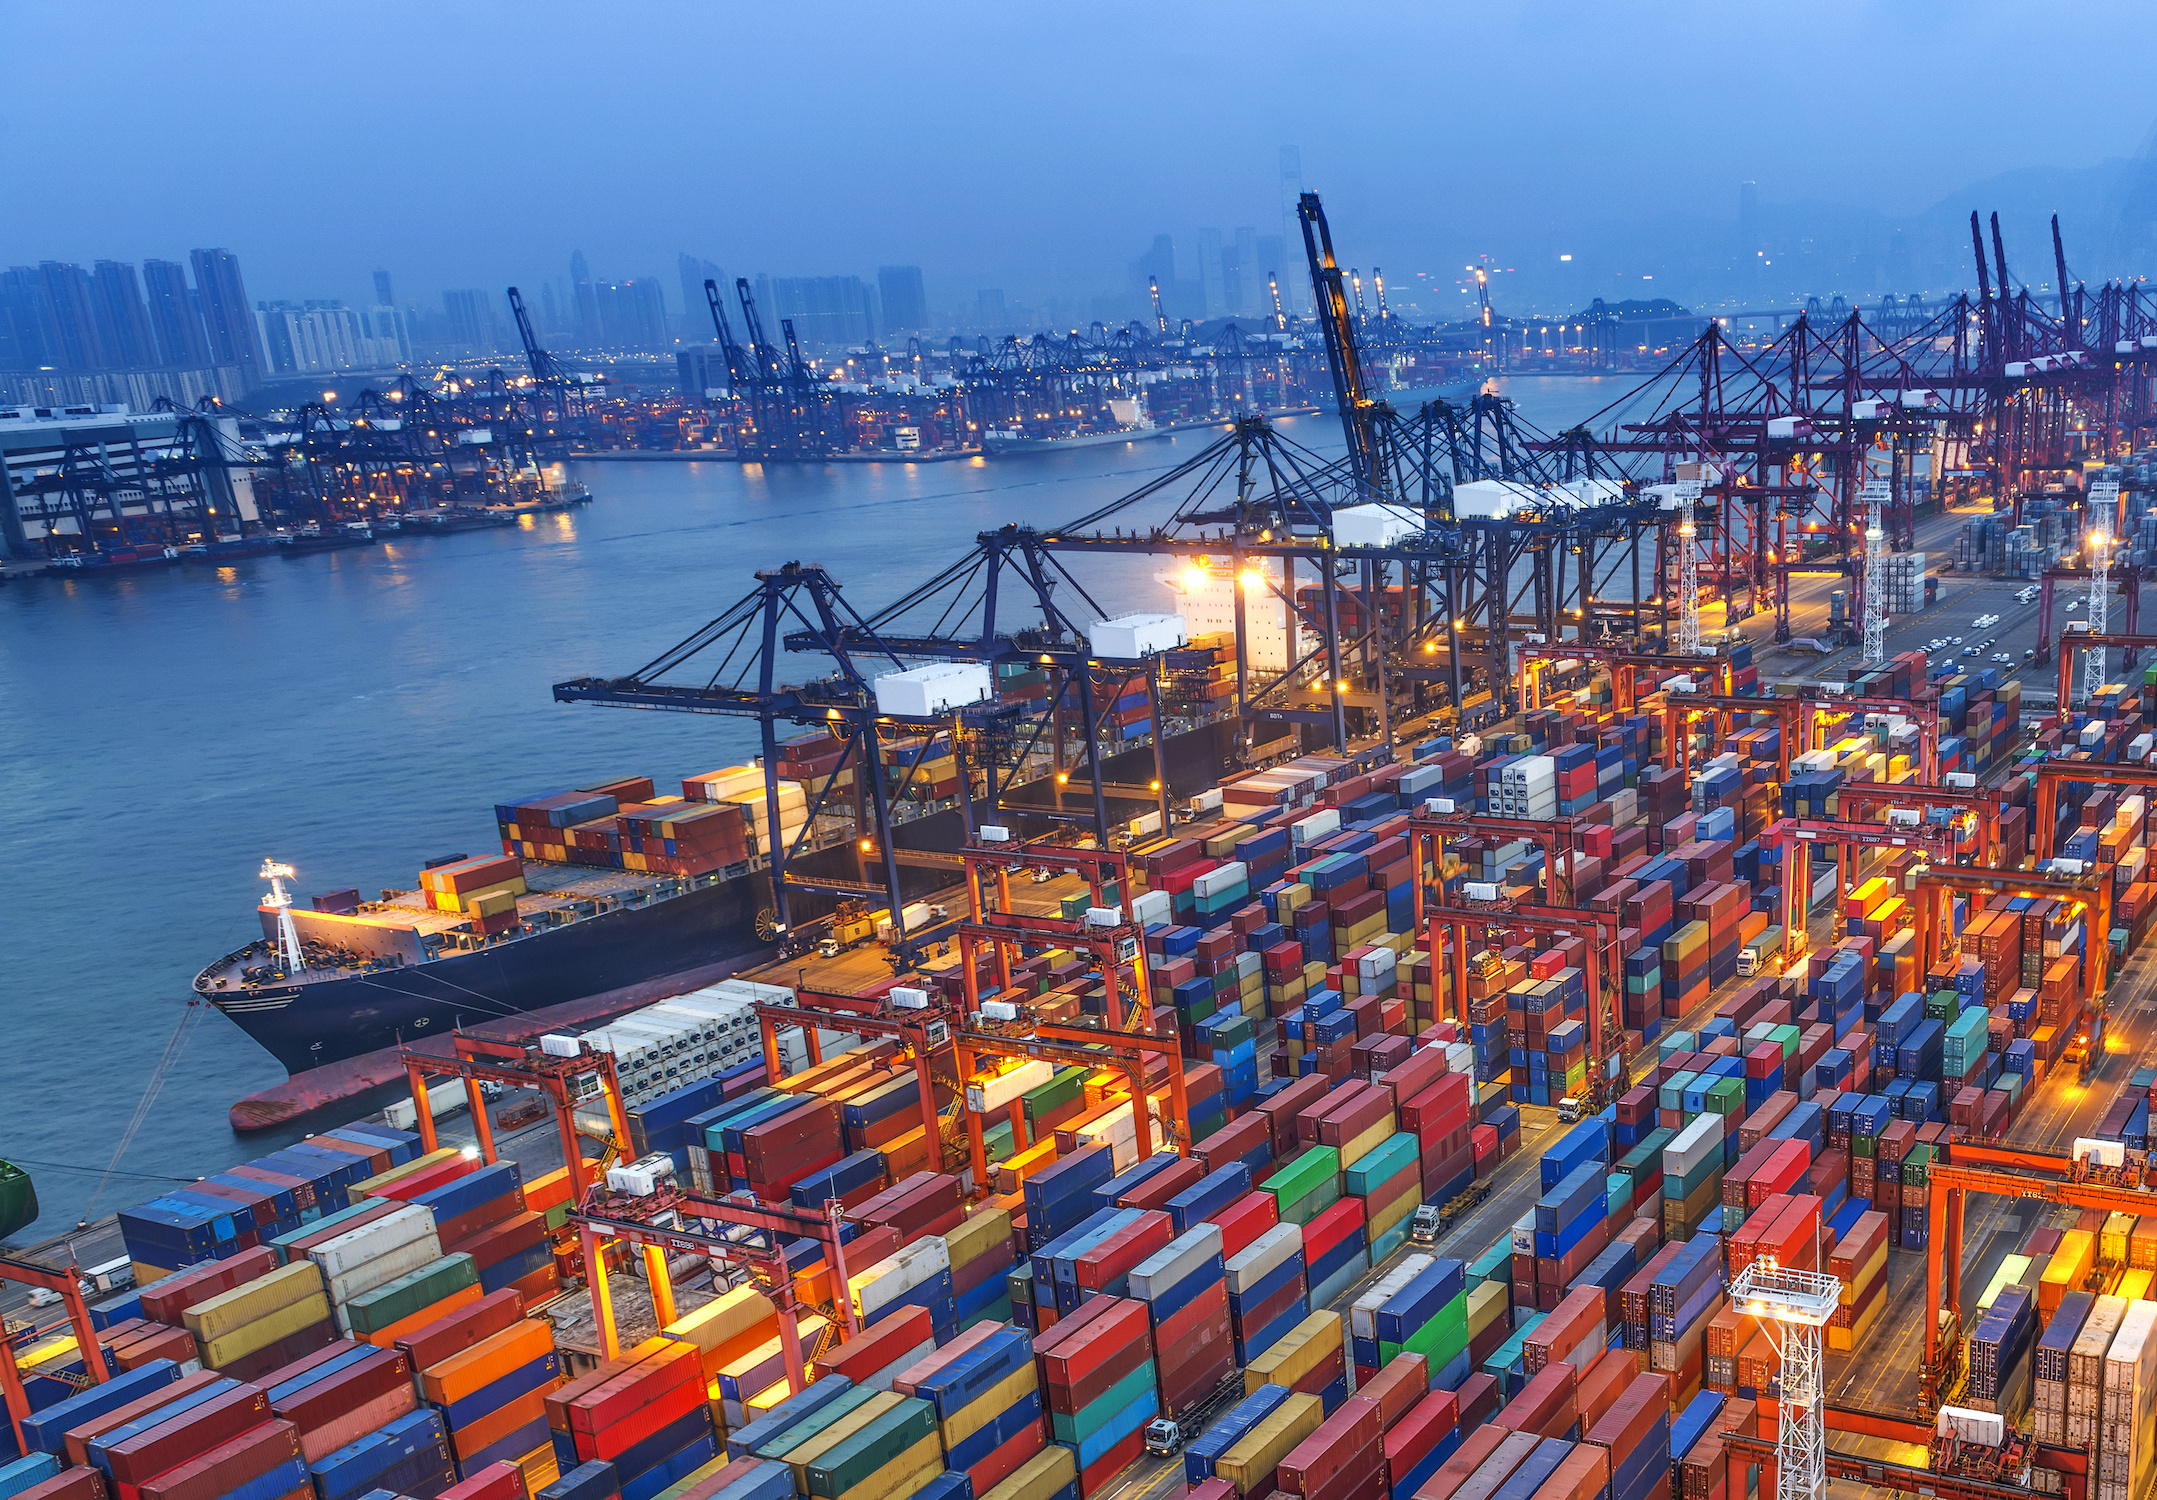 Shippers need to focus on better capacity forecasting, sharing of benefits with carriers, and concentrating volume with fewer partners to navigate what will be a tricky container allocation environment in 2021